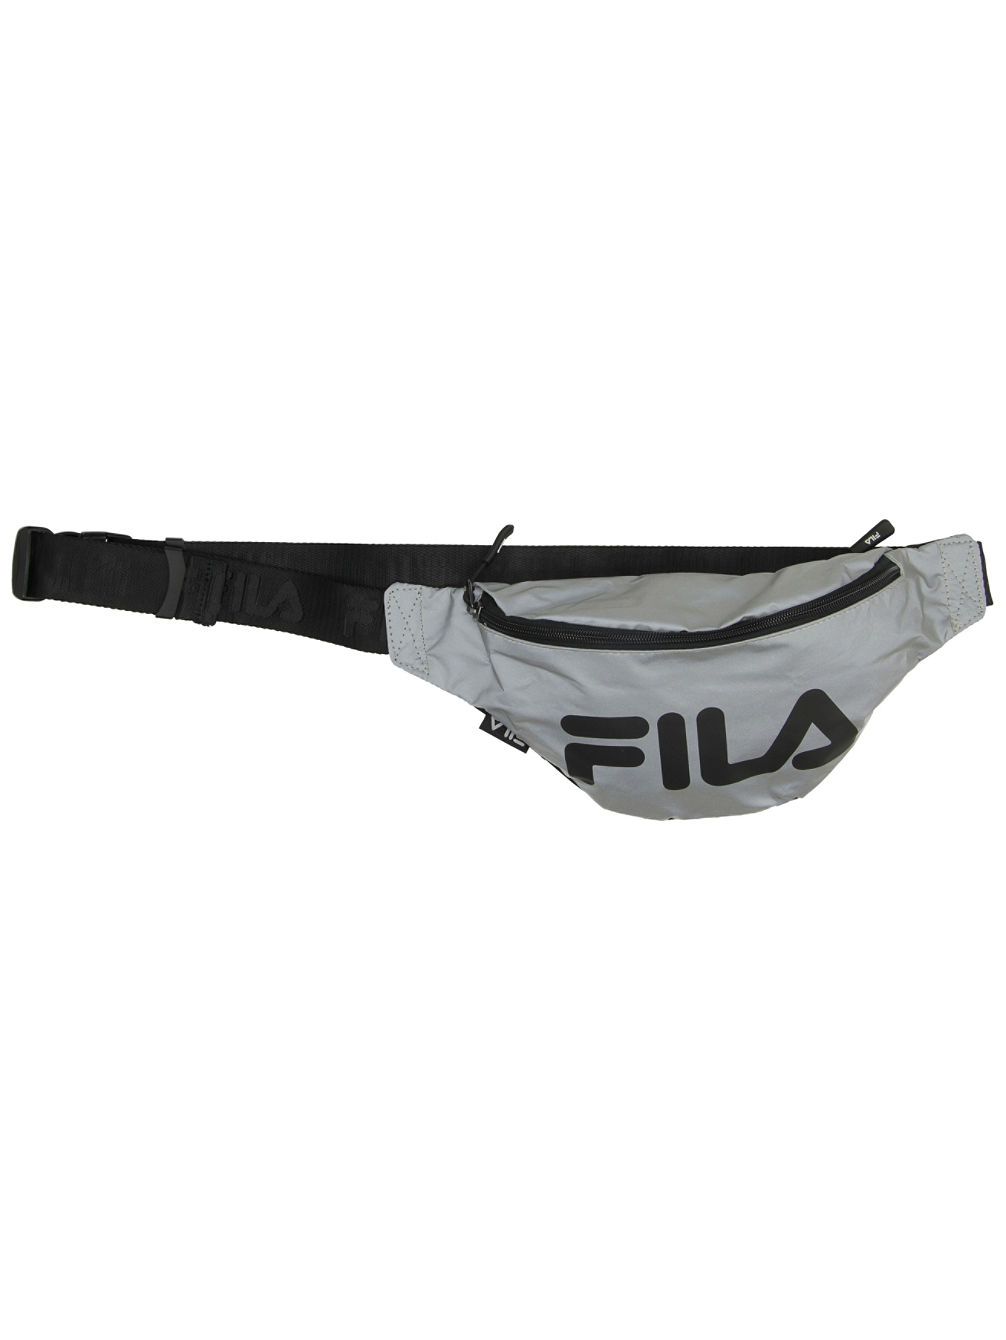 Slim Reflective Fanny Pack